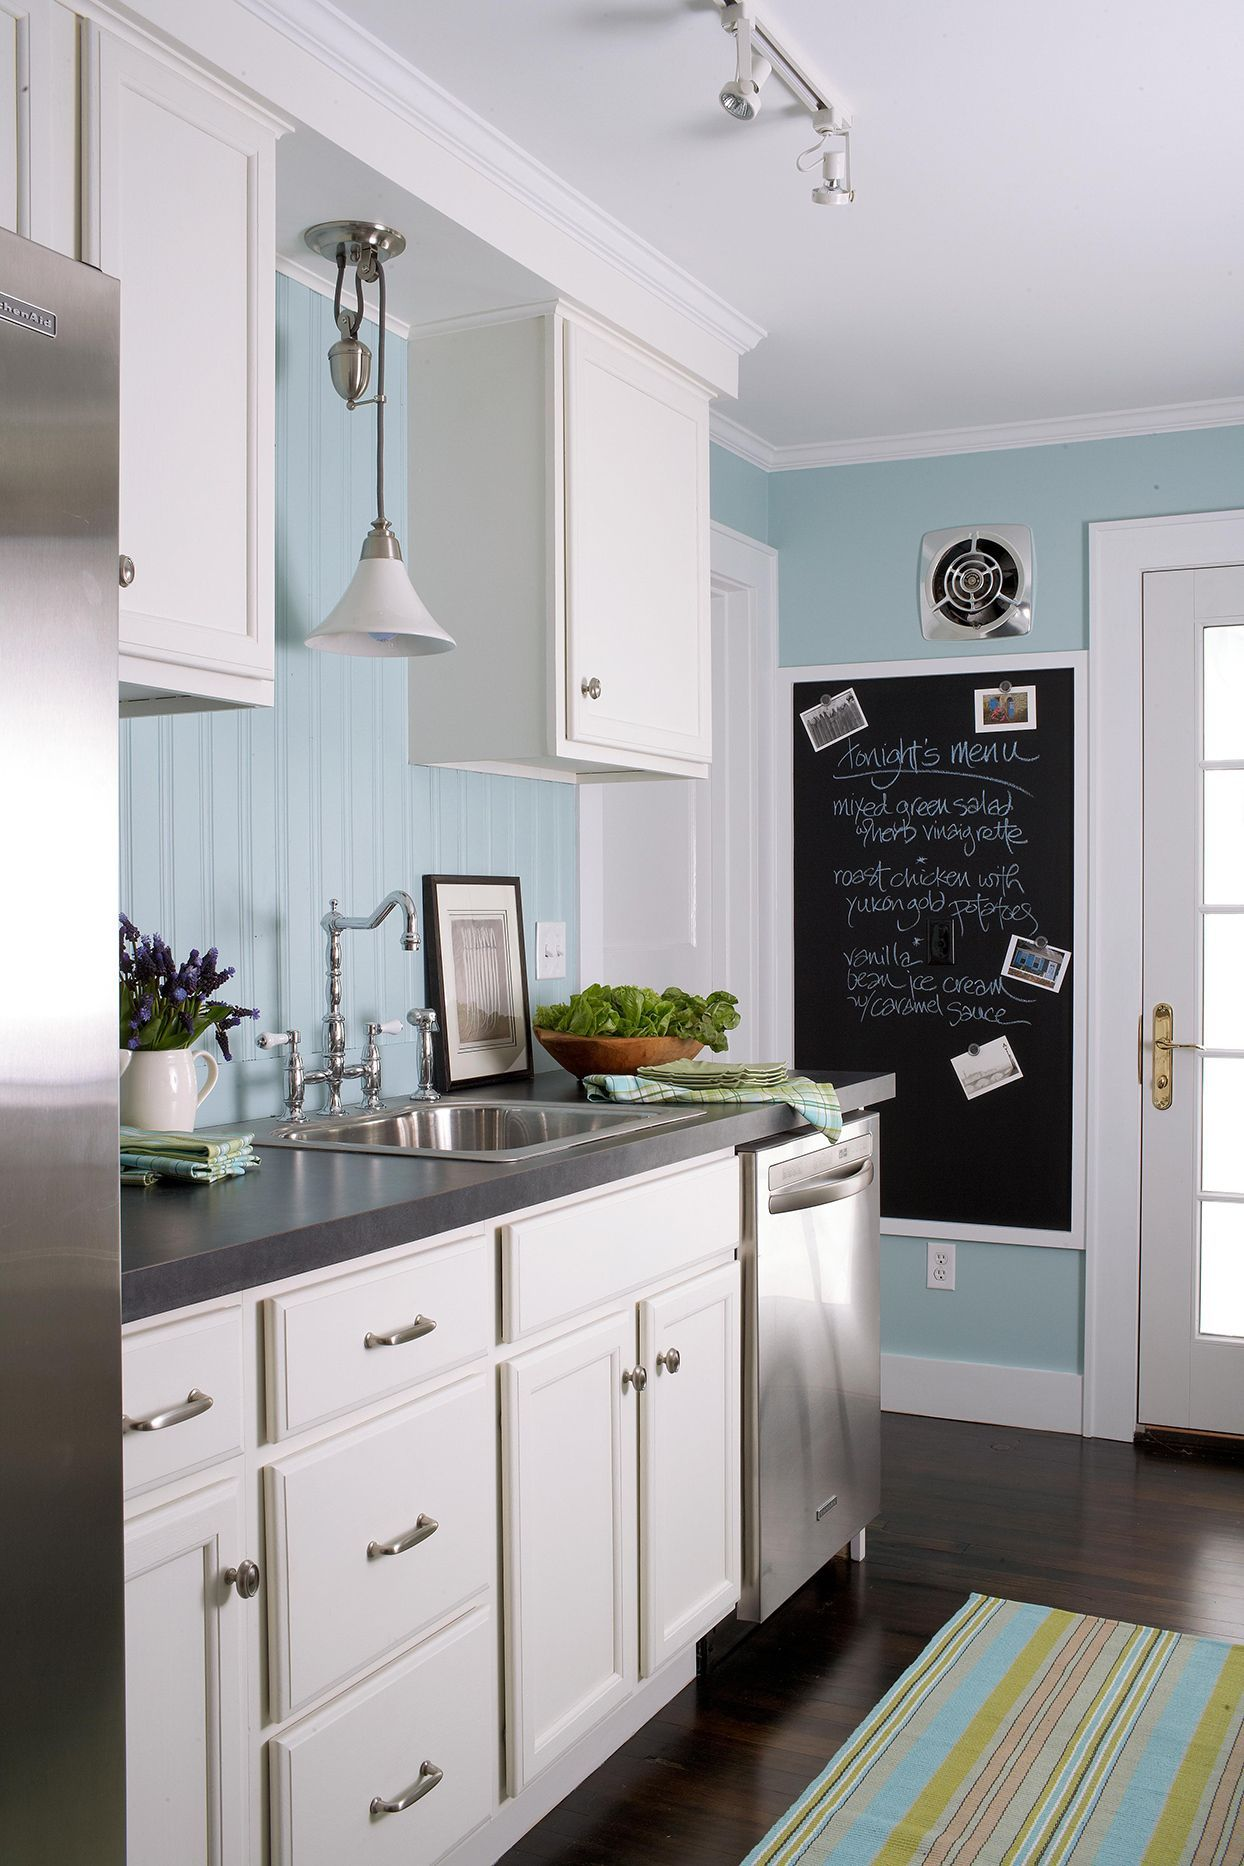 17 Blue Kitchen Ideas For A Refreshingly Colorful Cooking Space Blue Kitchens Kitchen Design Kitchen Colour Schemes